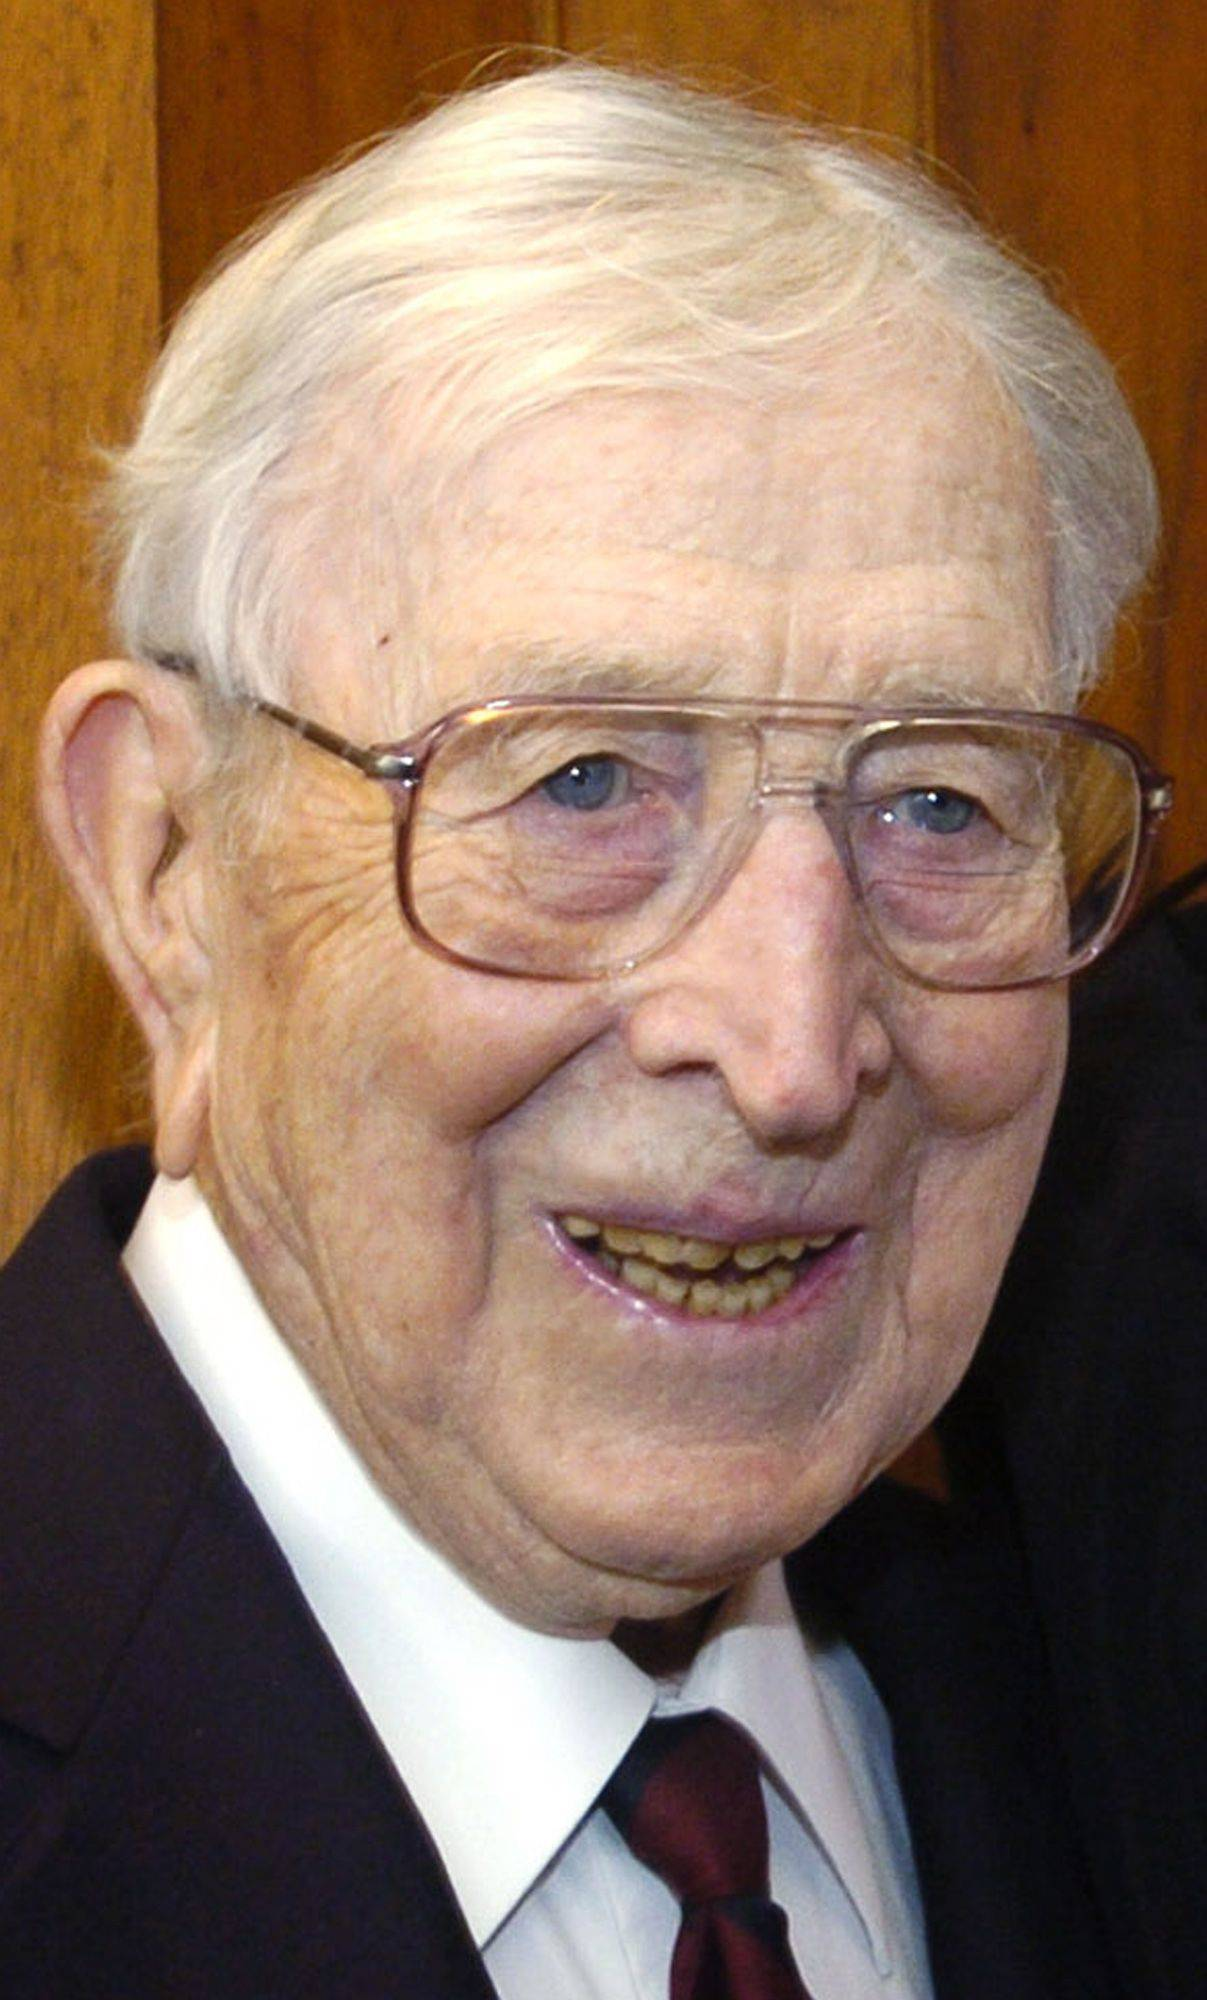 Legendary basketball coach John Wooden died June 4, 2010 at the age of 99.